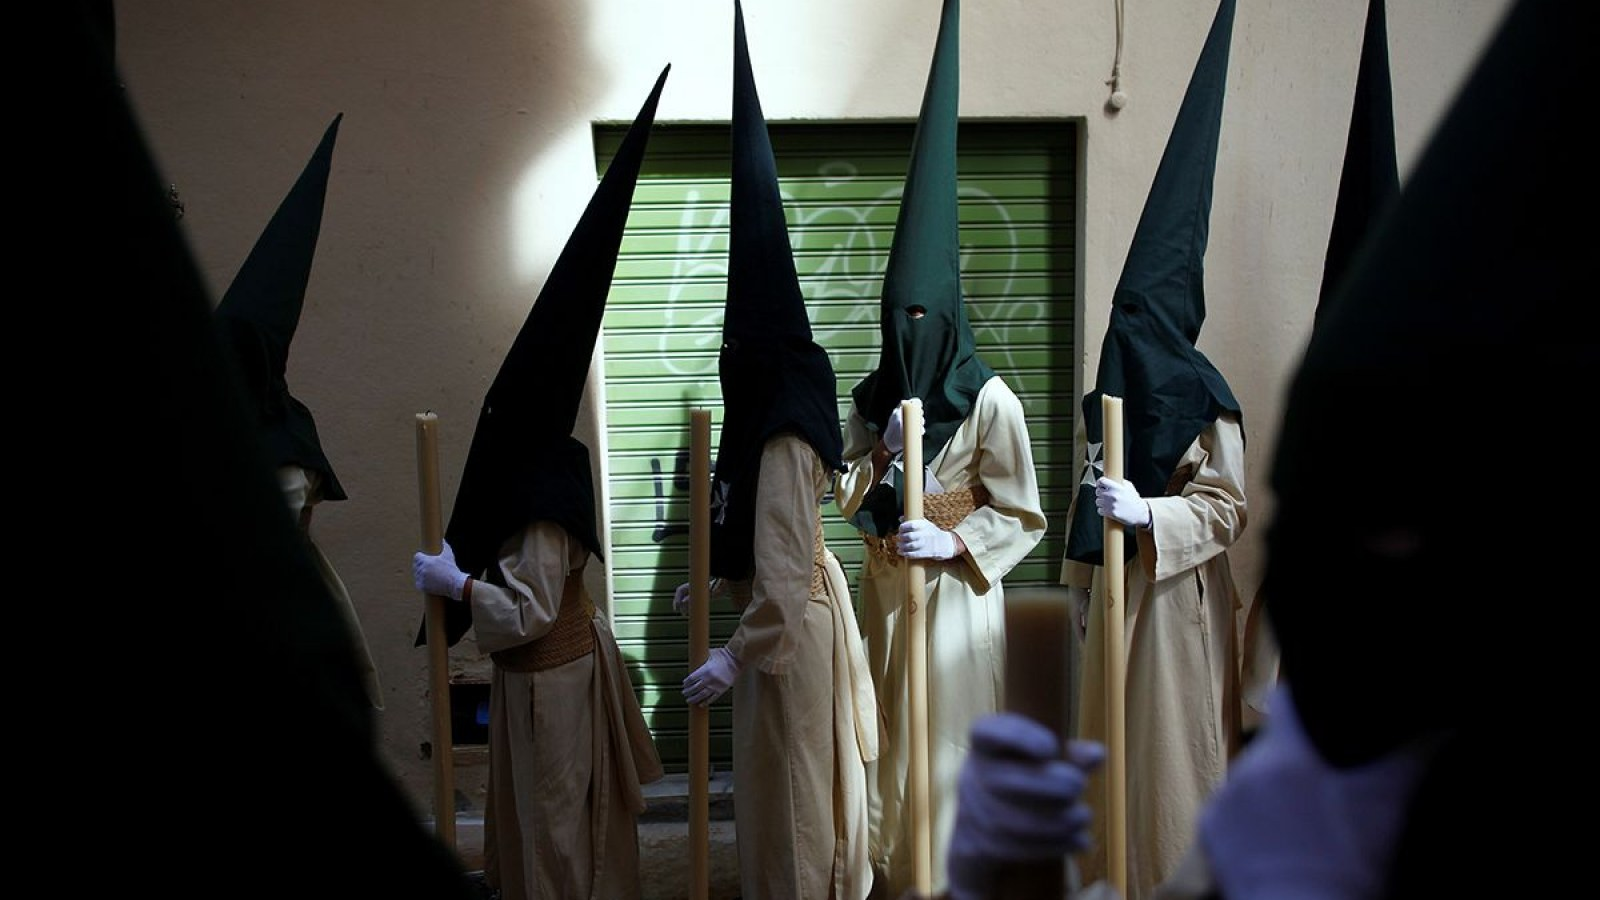 Holy Week: These Spanish Penitents Have Nothing To Do With